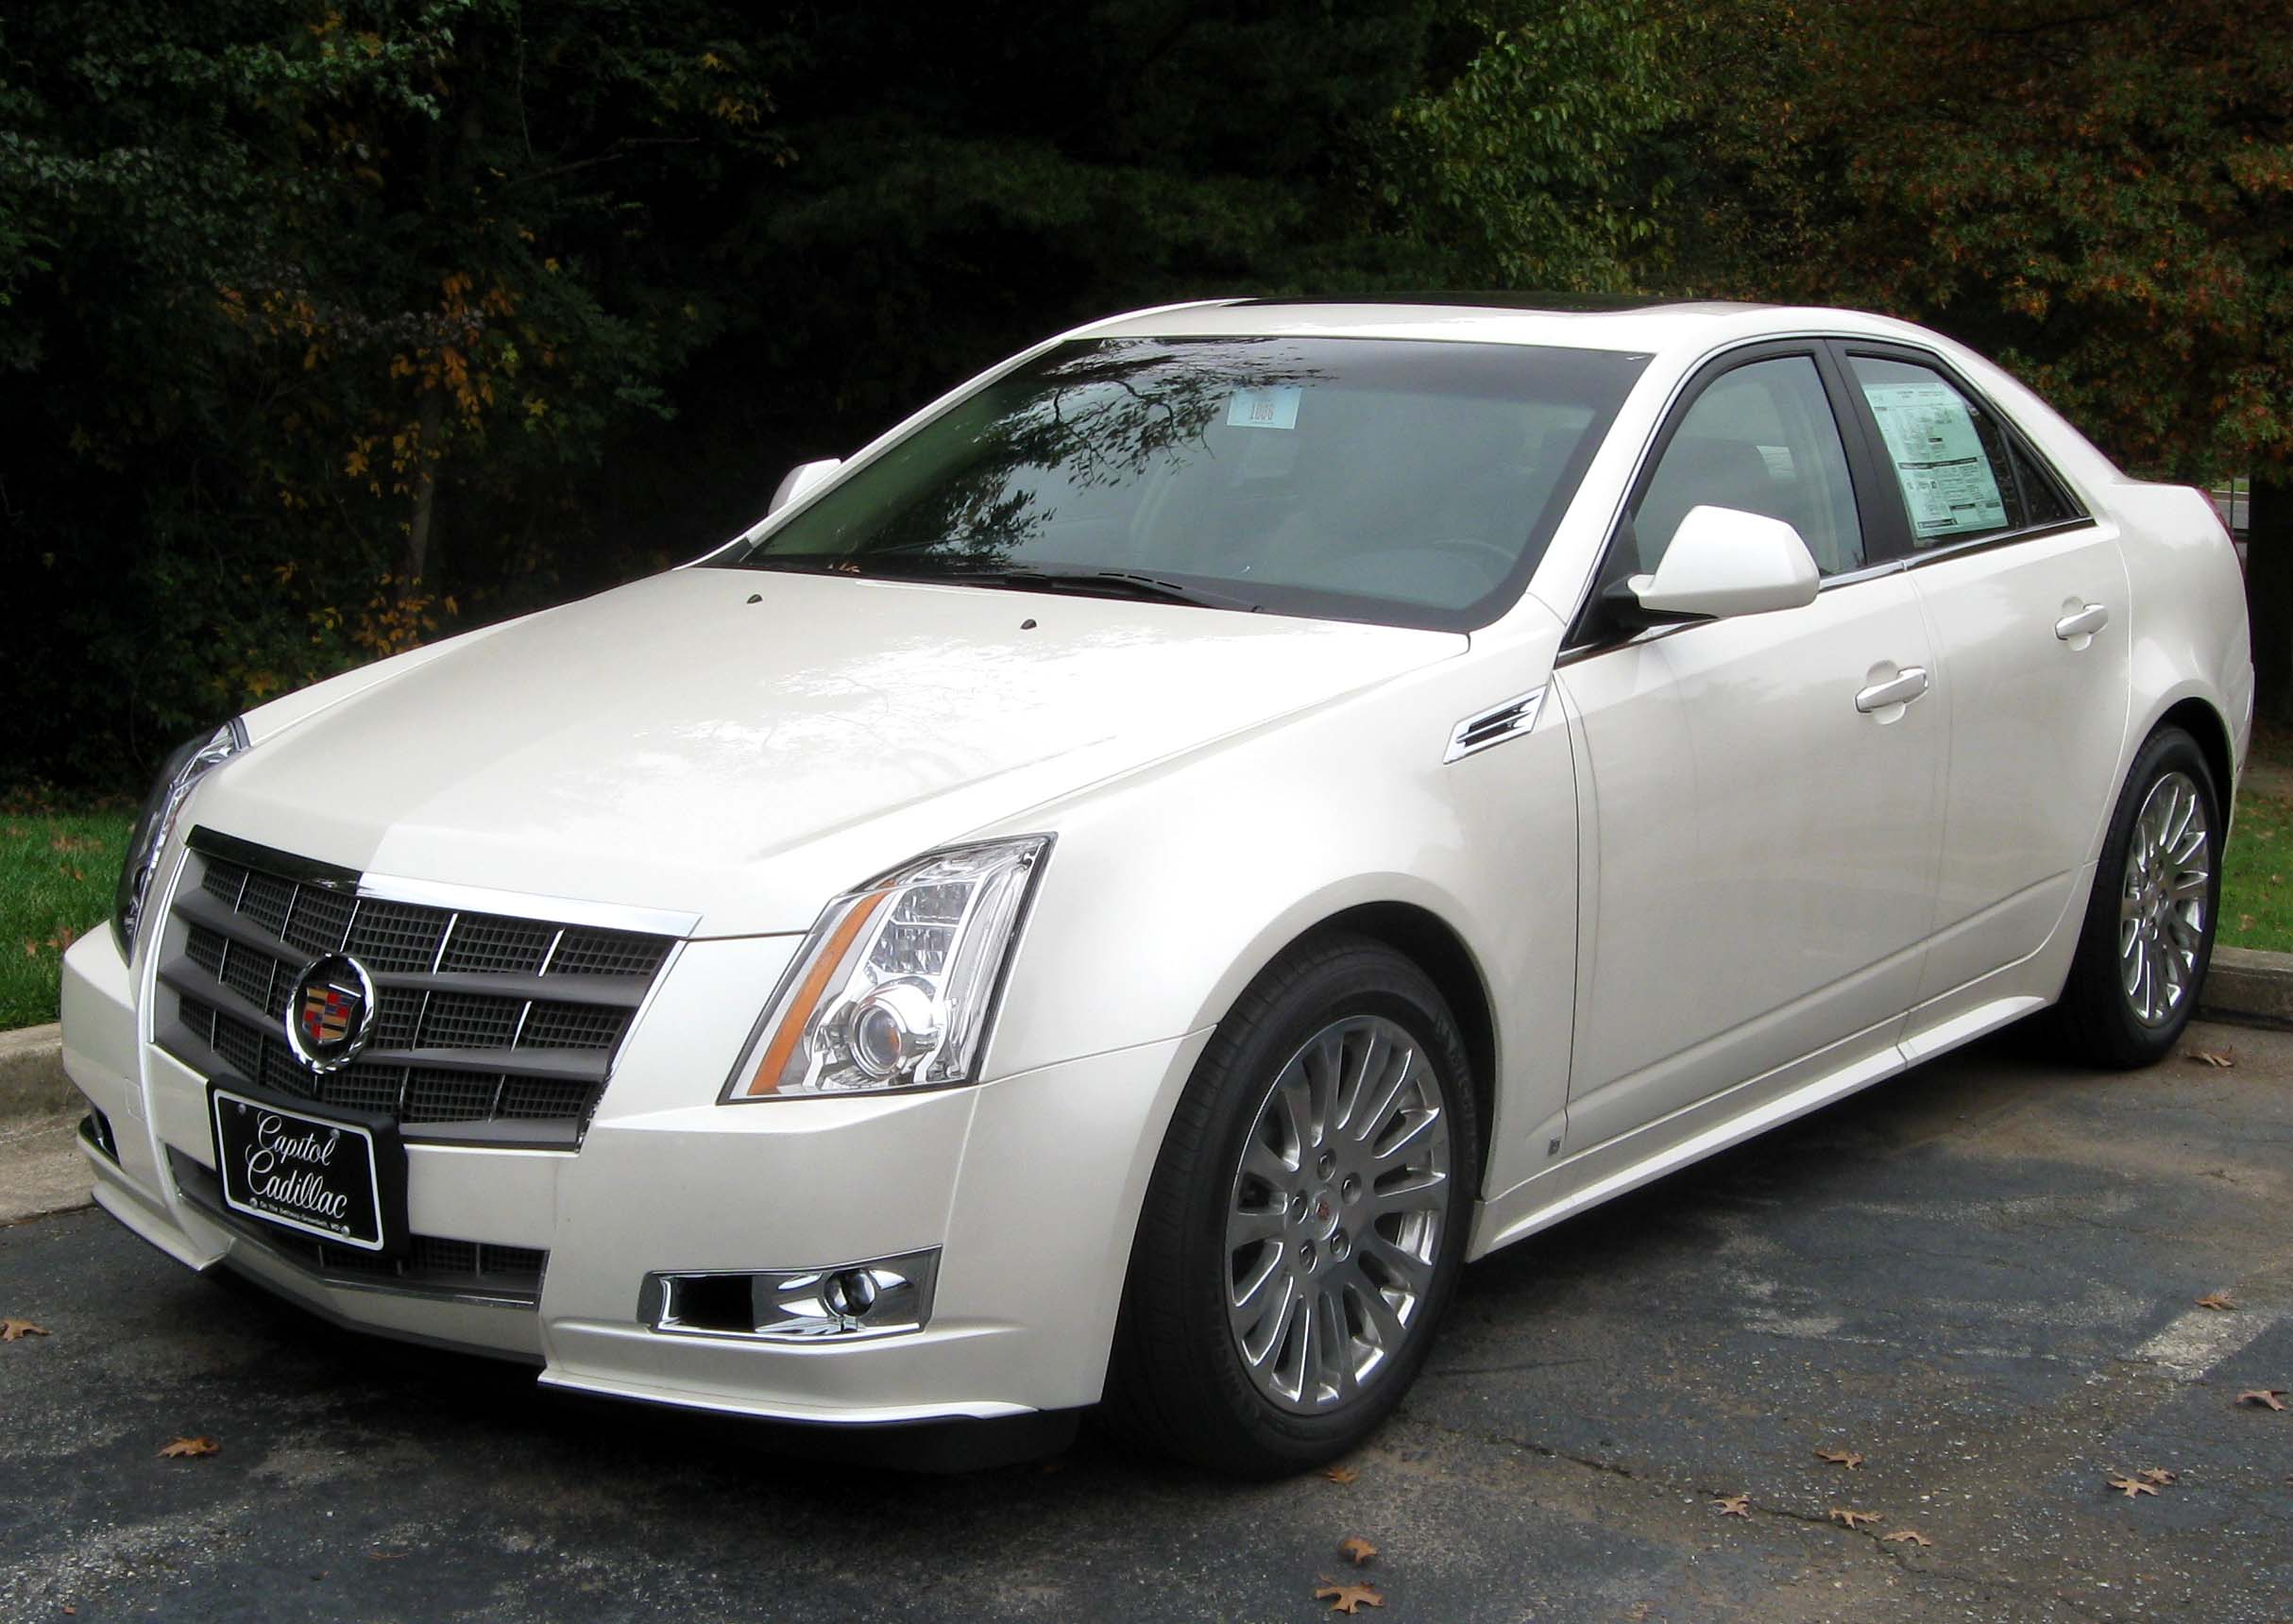 Cadillac Cts V Wagon For Sale 2 >> 2008 Cadillac CTS - Information and photos - MOMENTcar